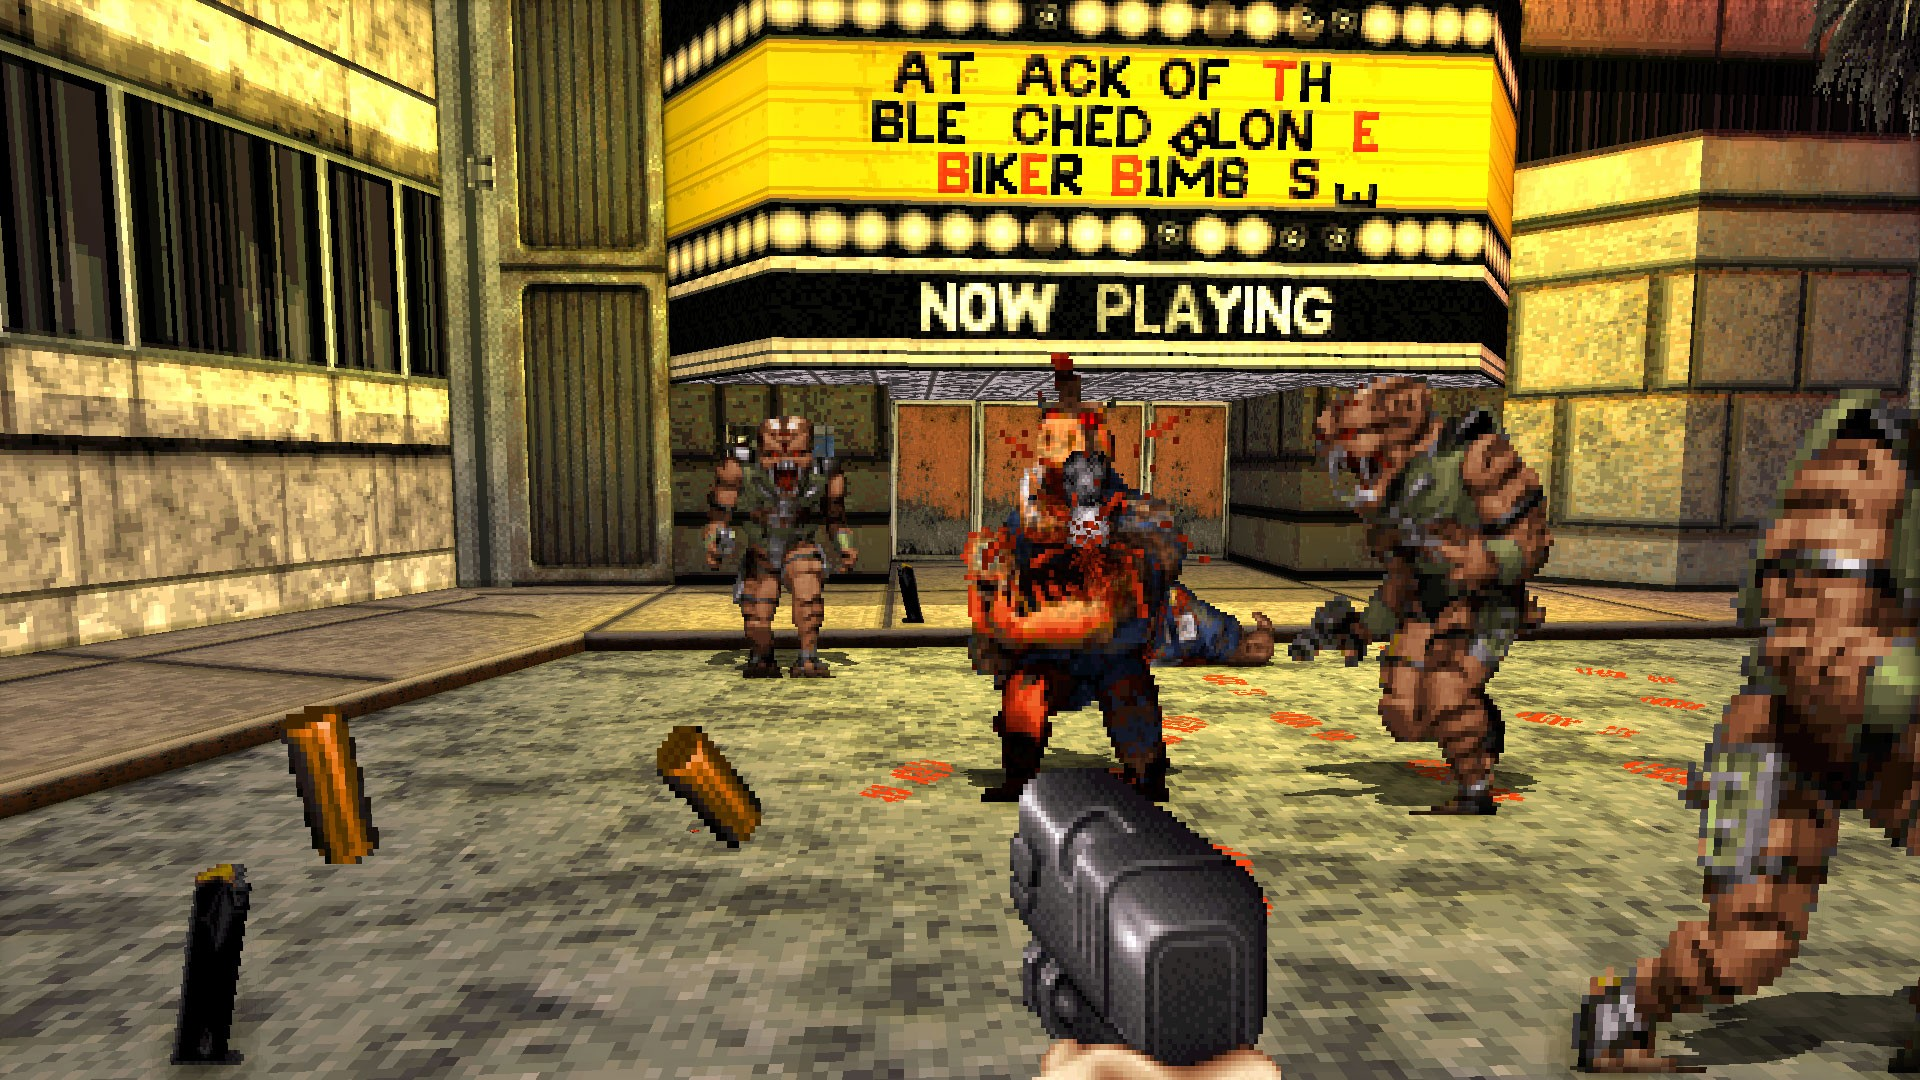 The composer of Duke Nukem 3D is suing Gearbox & Valve